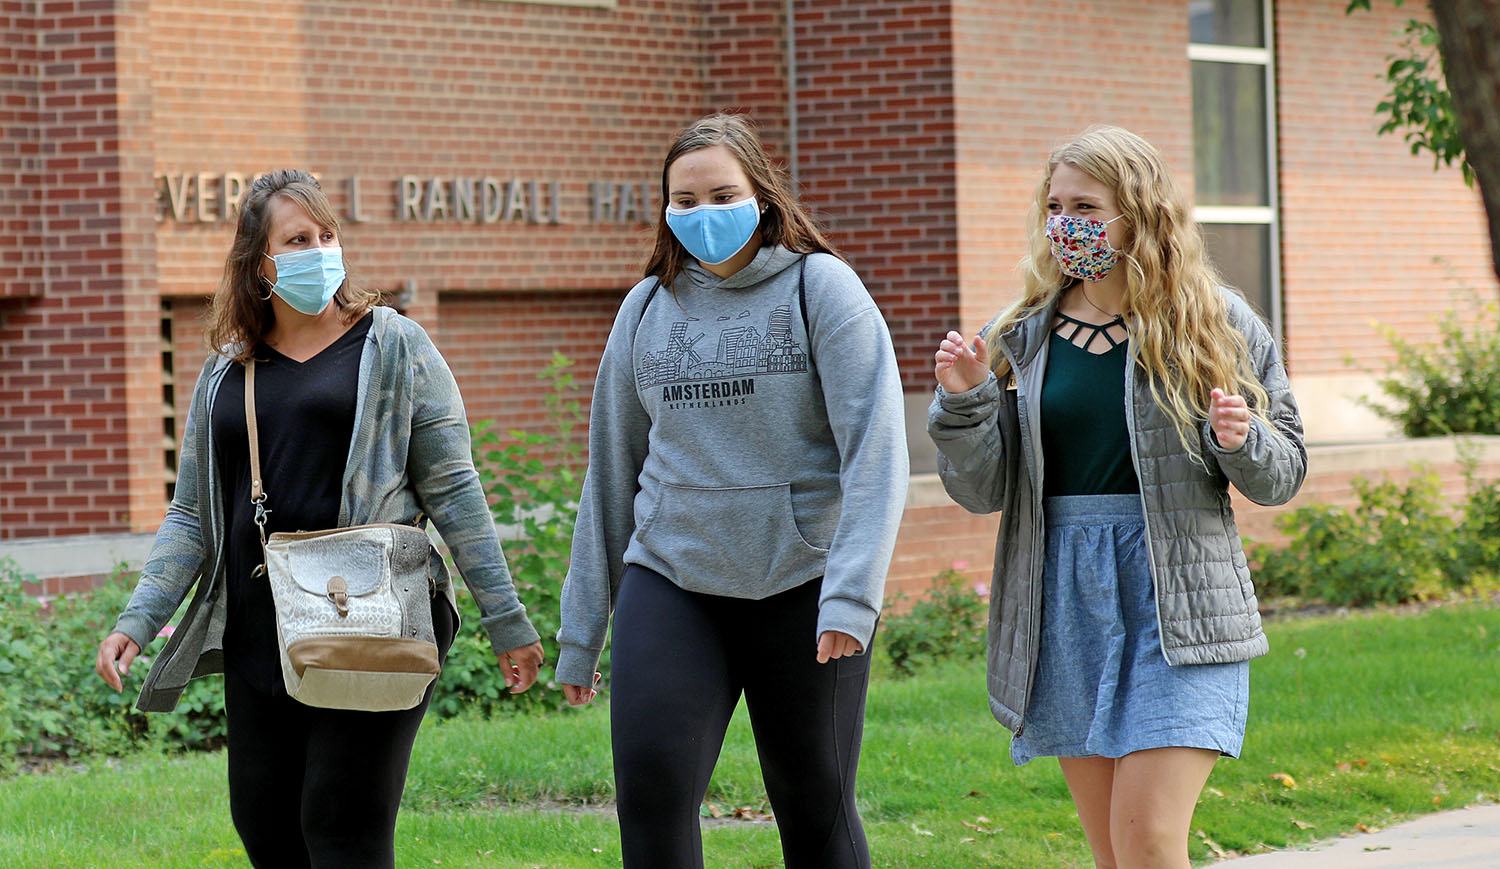 UNK campus visit assistant Holly Rockenbach, right, leads a tour for prospective student Morgan Allen of Blue Hill, center, and her mother Tricia on Thursday morning. UNK resumed in-person visits this week.